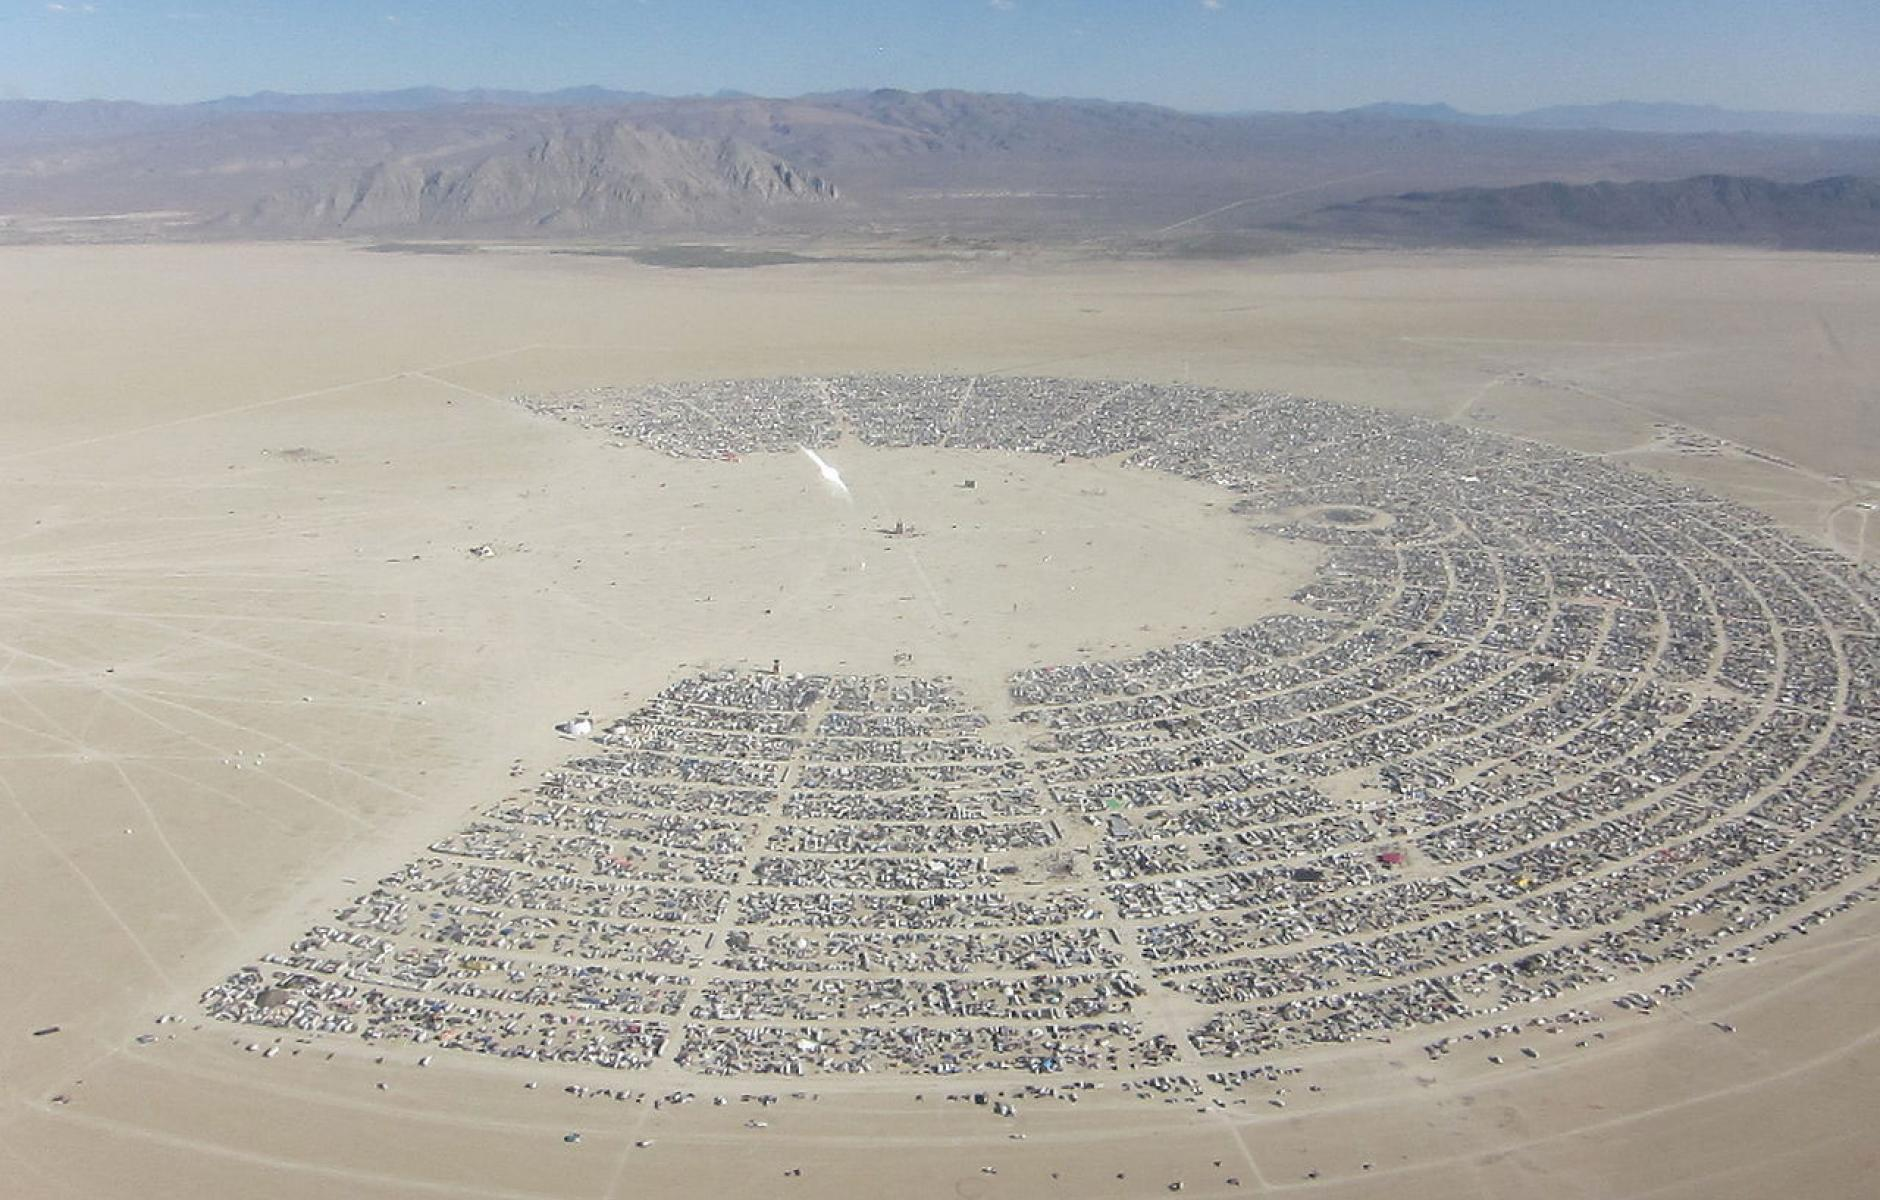 Article image for An international vision for cities, inspired by Burning Man